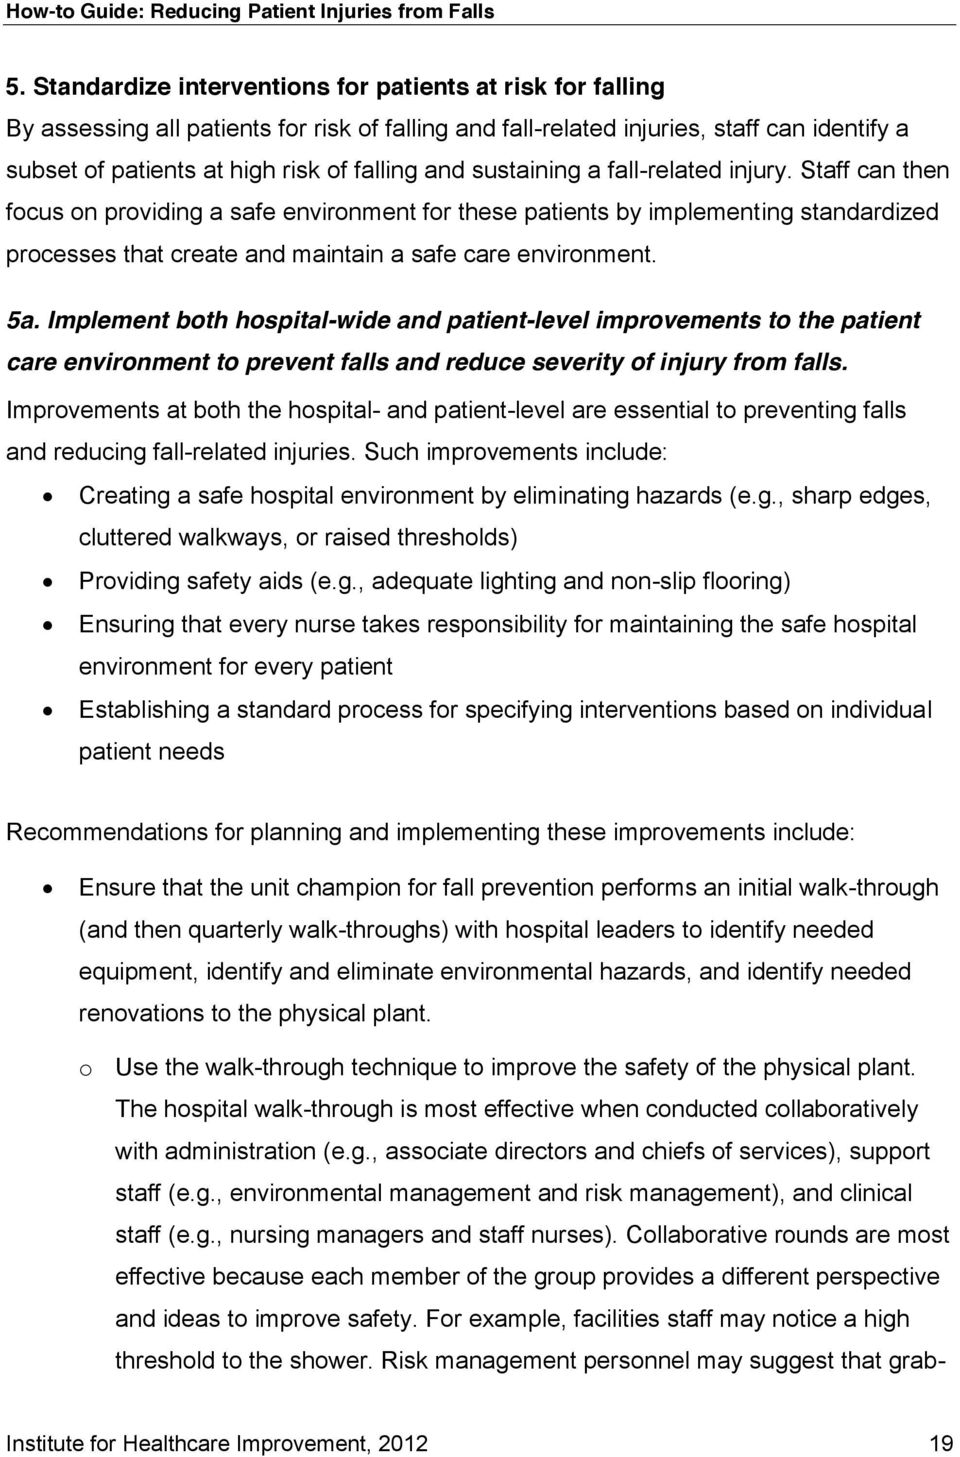 5a. Implement both hospital-wide and patient-level improvements to the patient care environment to prevent falls and reduce severity of injury from falls.